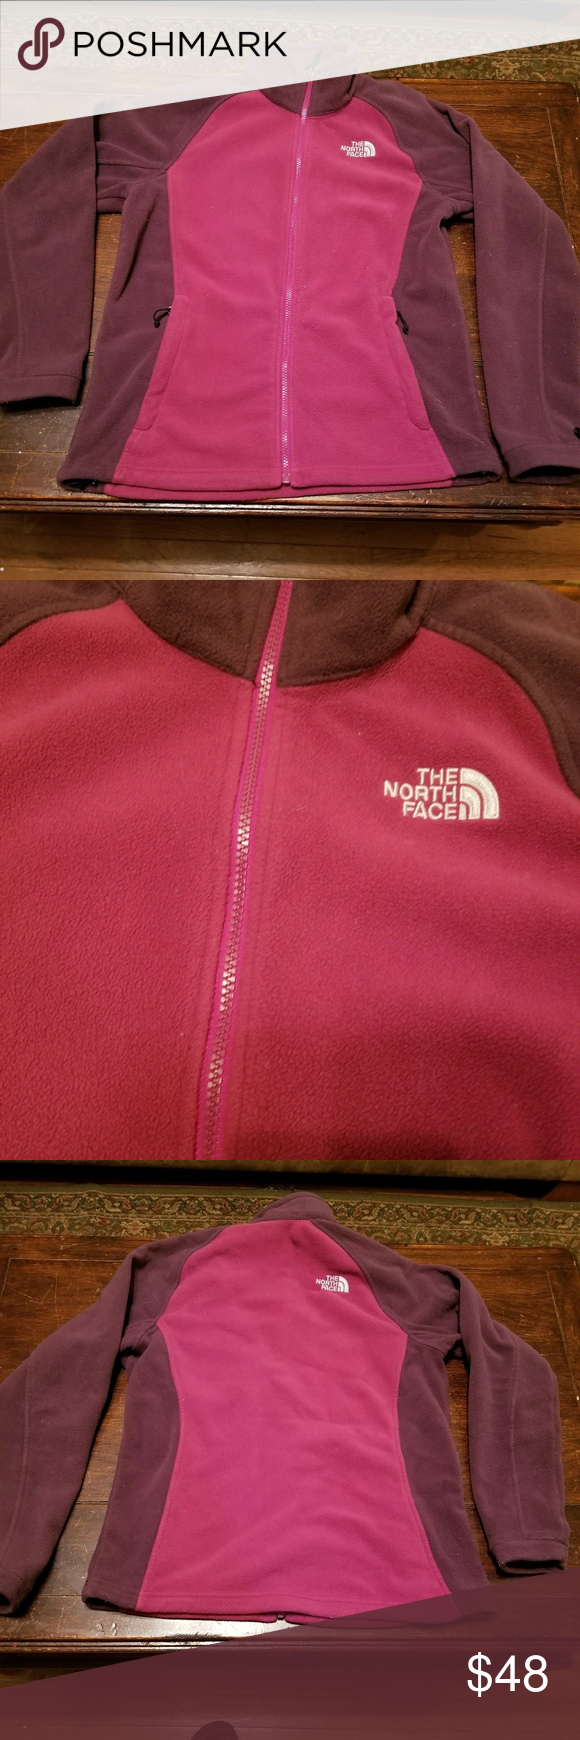 Pink Maroon Northface Jacket North Face Jacket Womens North Face Jacket Clothes Design [ 1740 x 580 Pixel ]